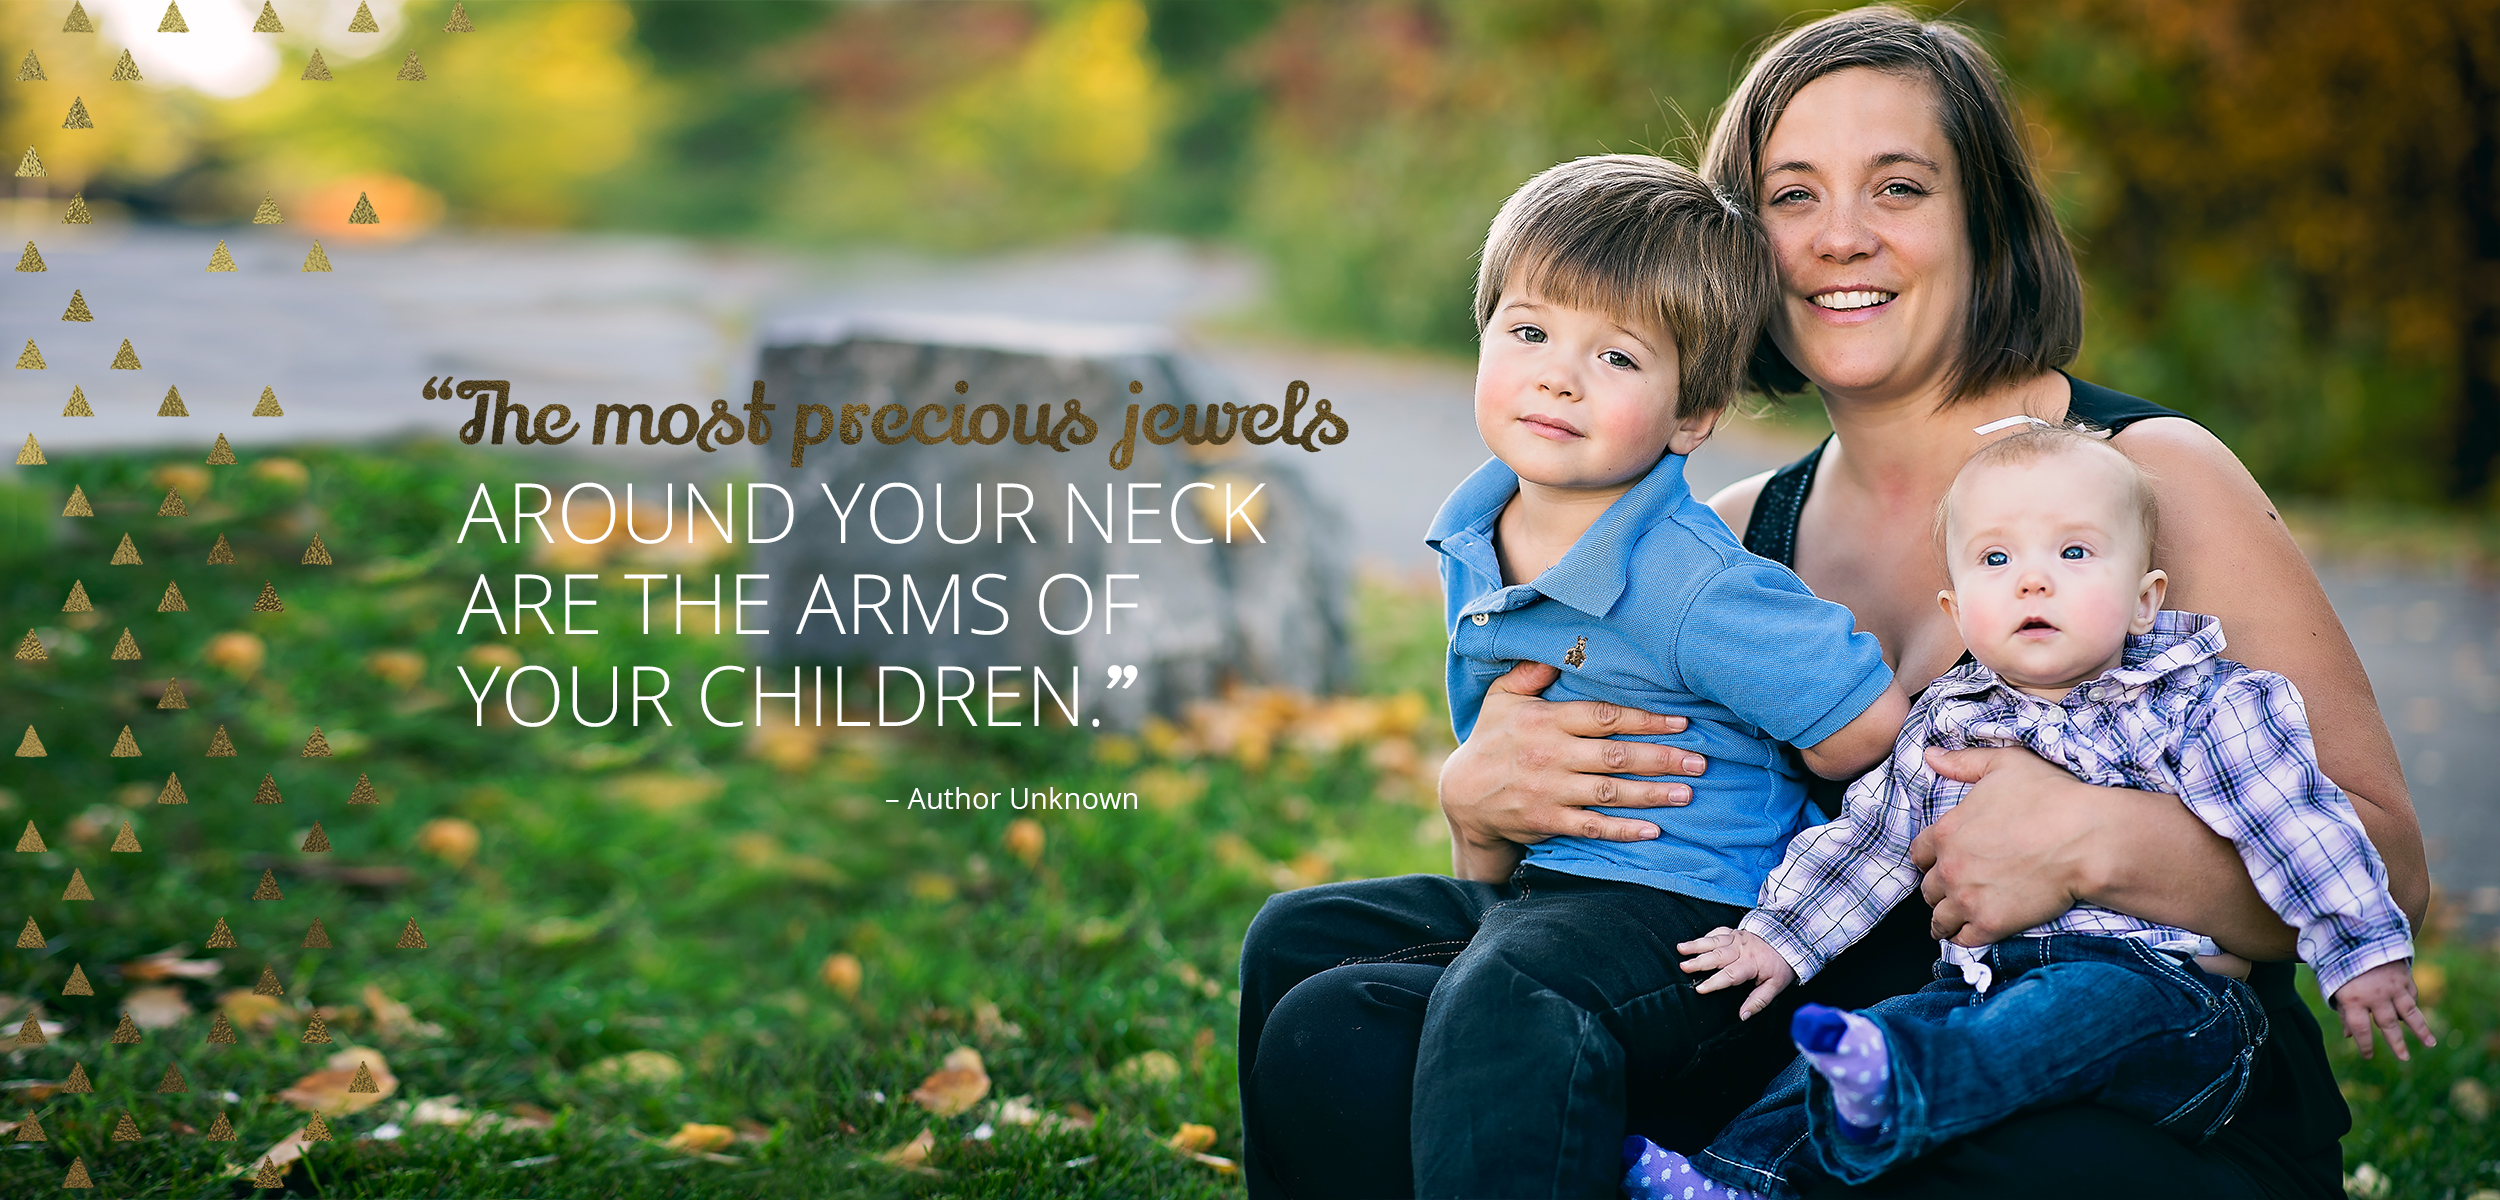 "Family Lifestyle Photography by Friday Design + Photography ""The most precious jewels around your neck are the arms of your children."" - Author Unknown"